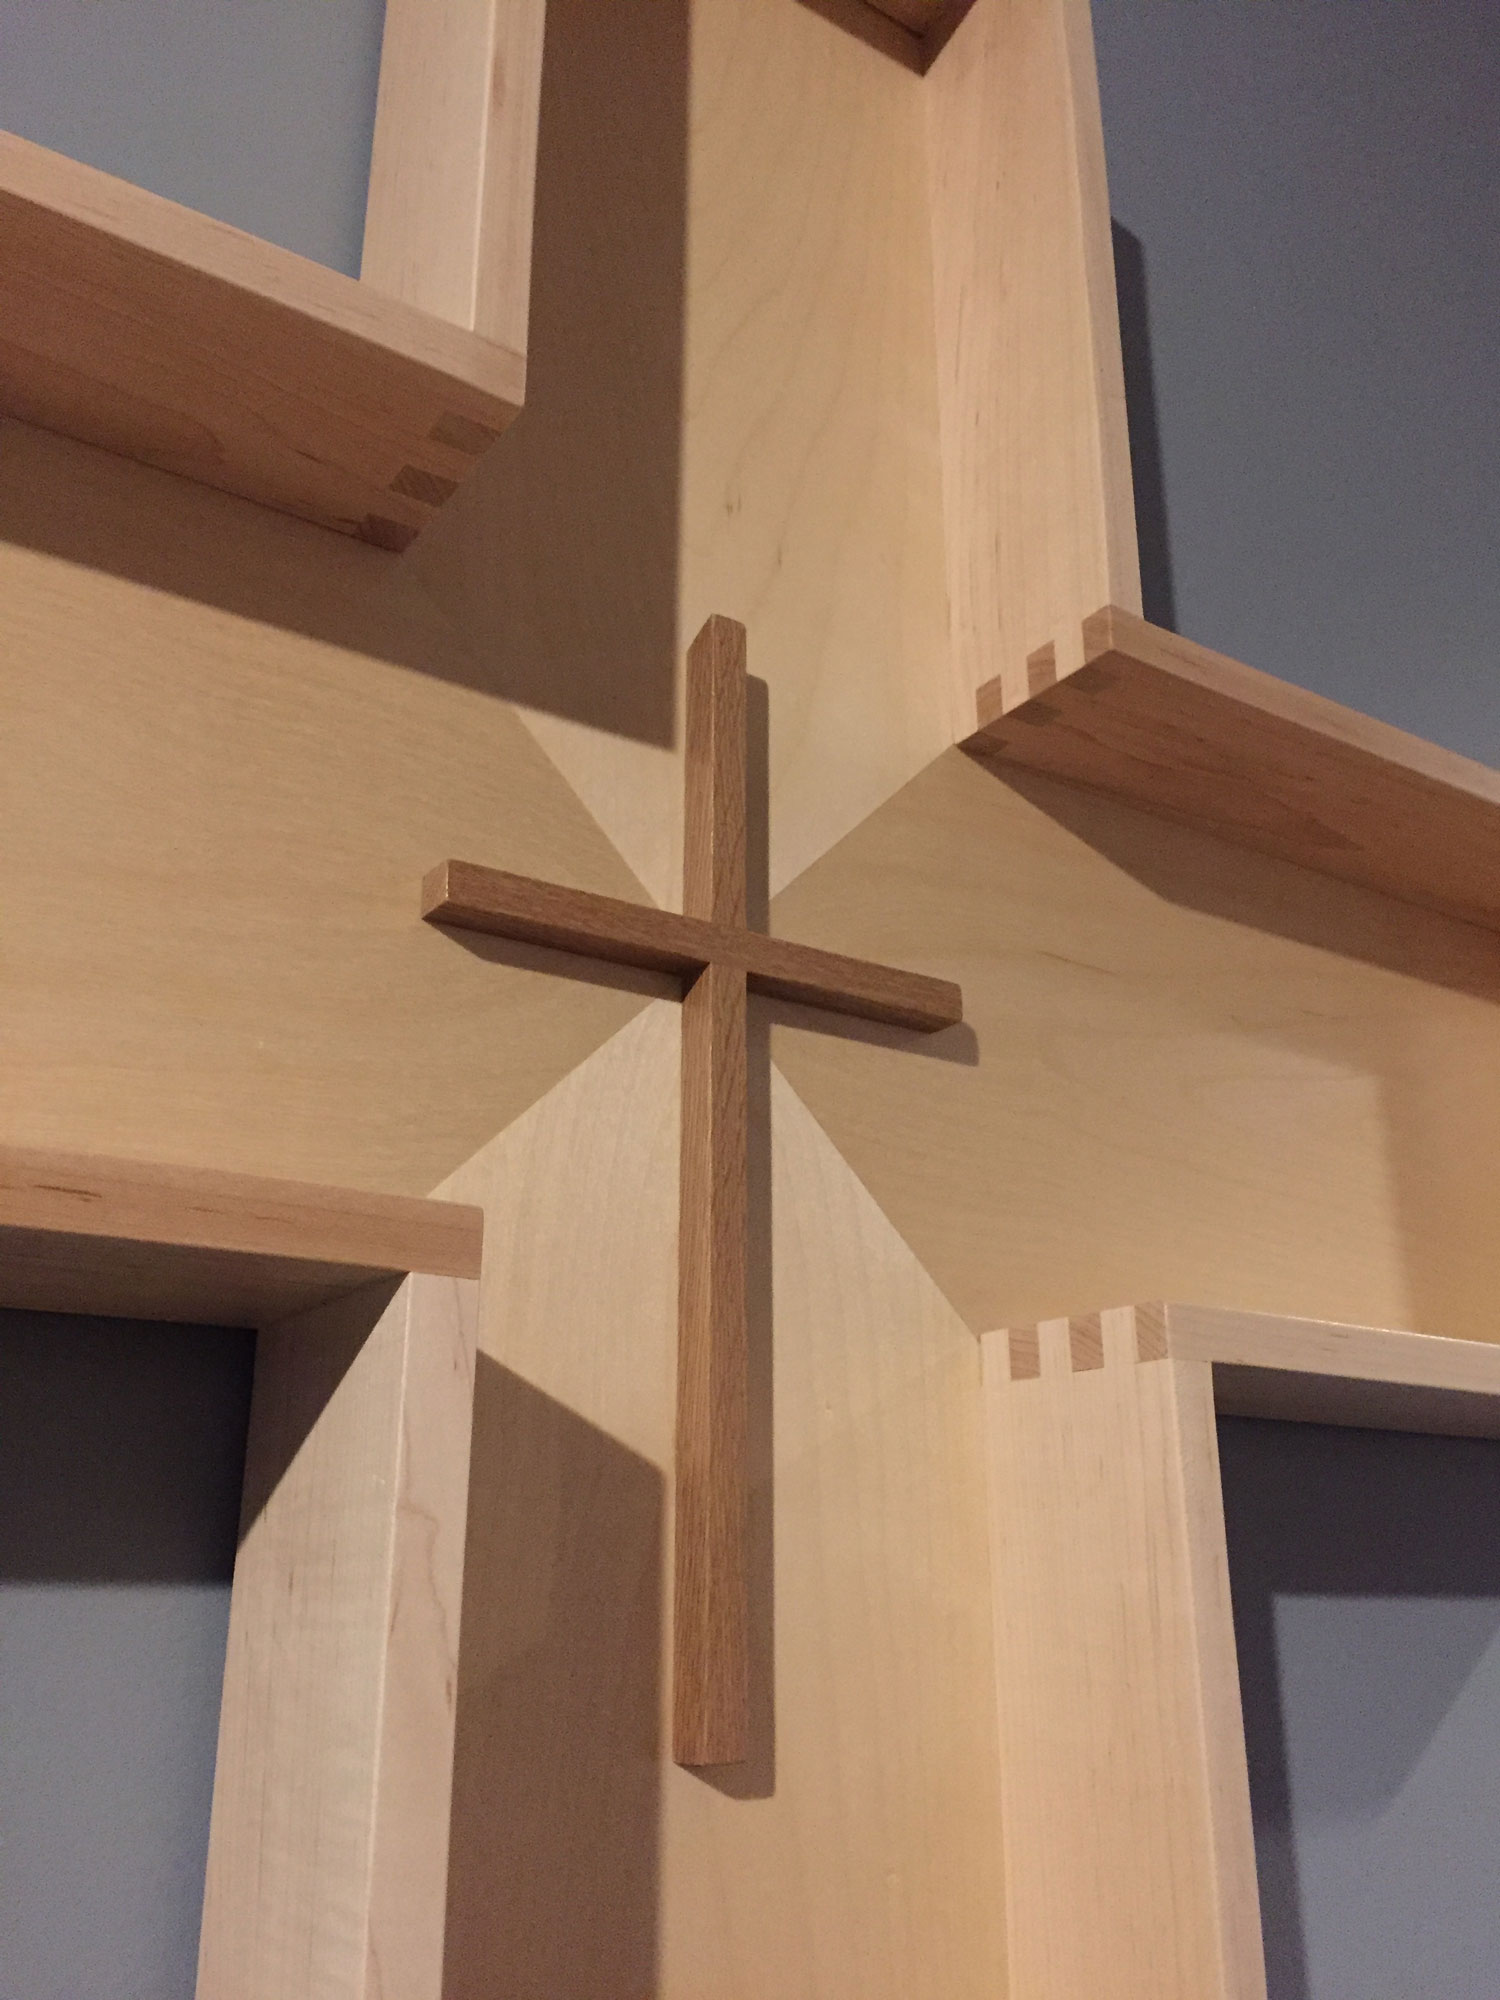 Detail of Pacione cross wall-display element